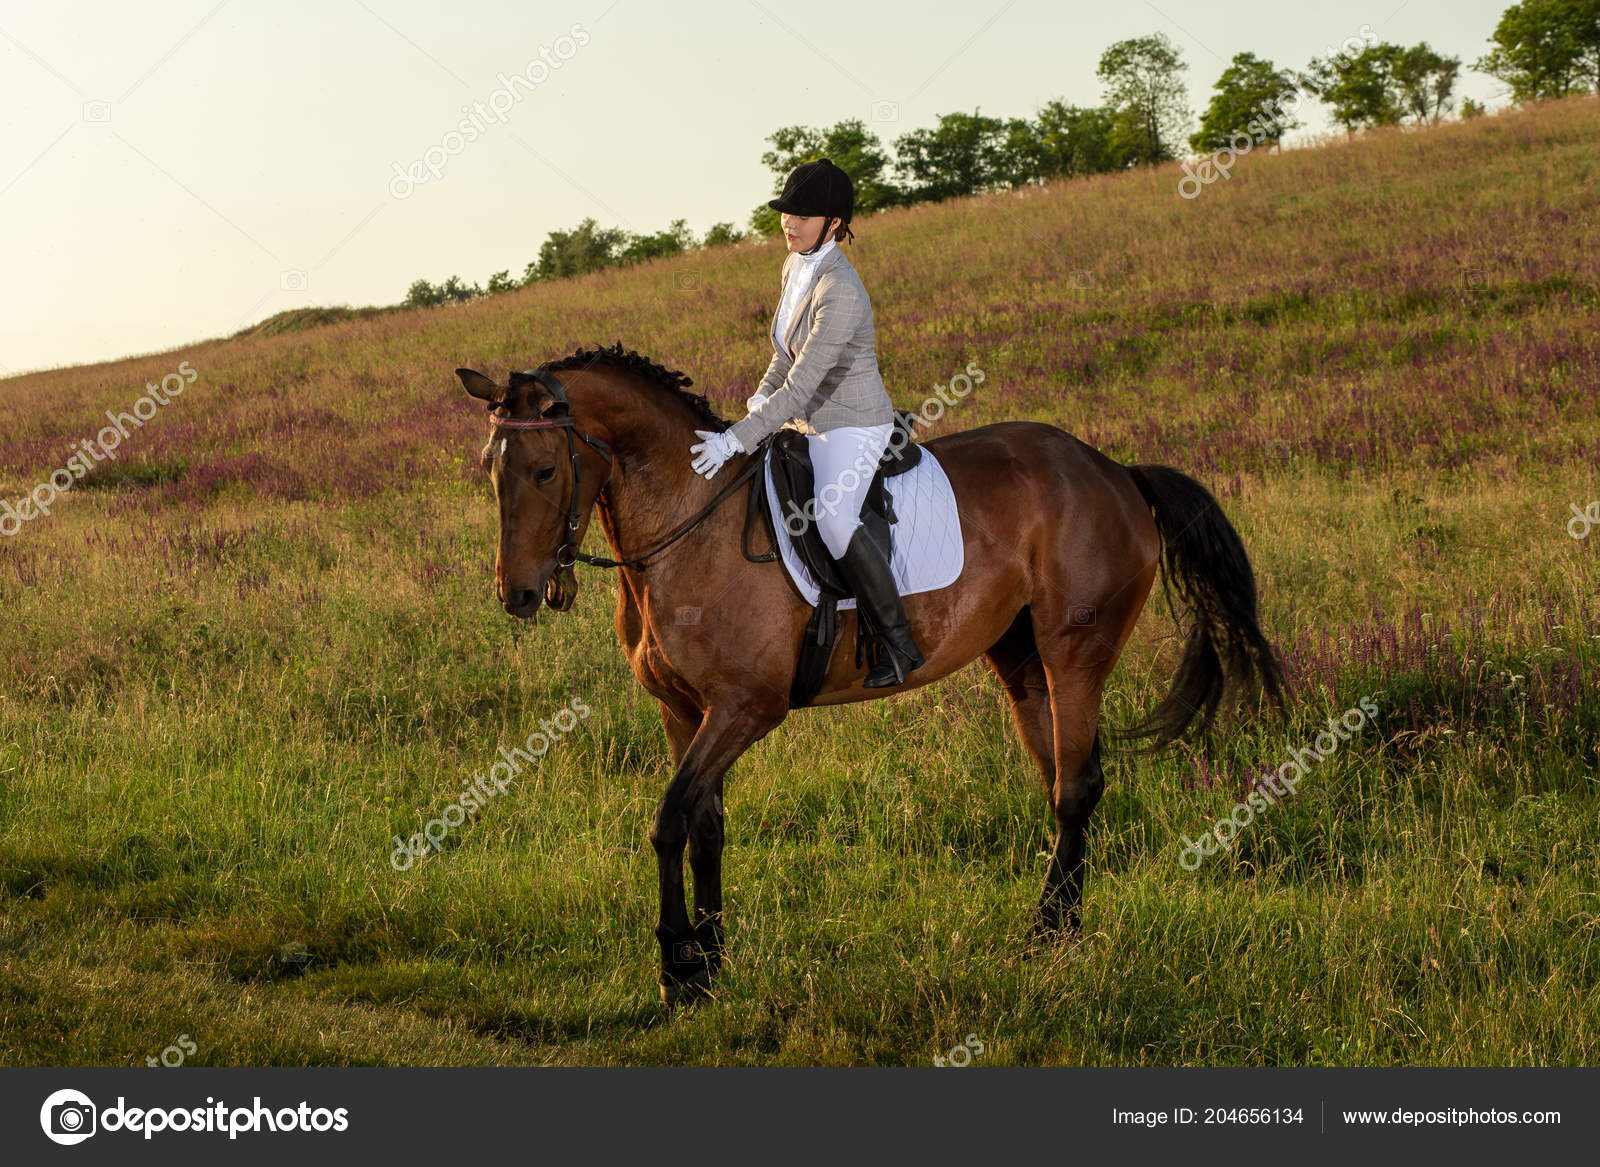 Young Woman Rider With Her Horse In Evening Sunset Light Outdoor Photography In Lifestyle Mood Stock Photo C Nazarov Dnepr Gmail Com 204656134